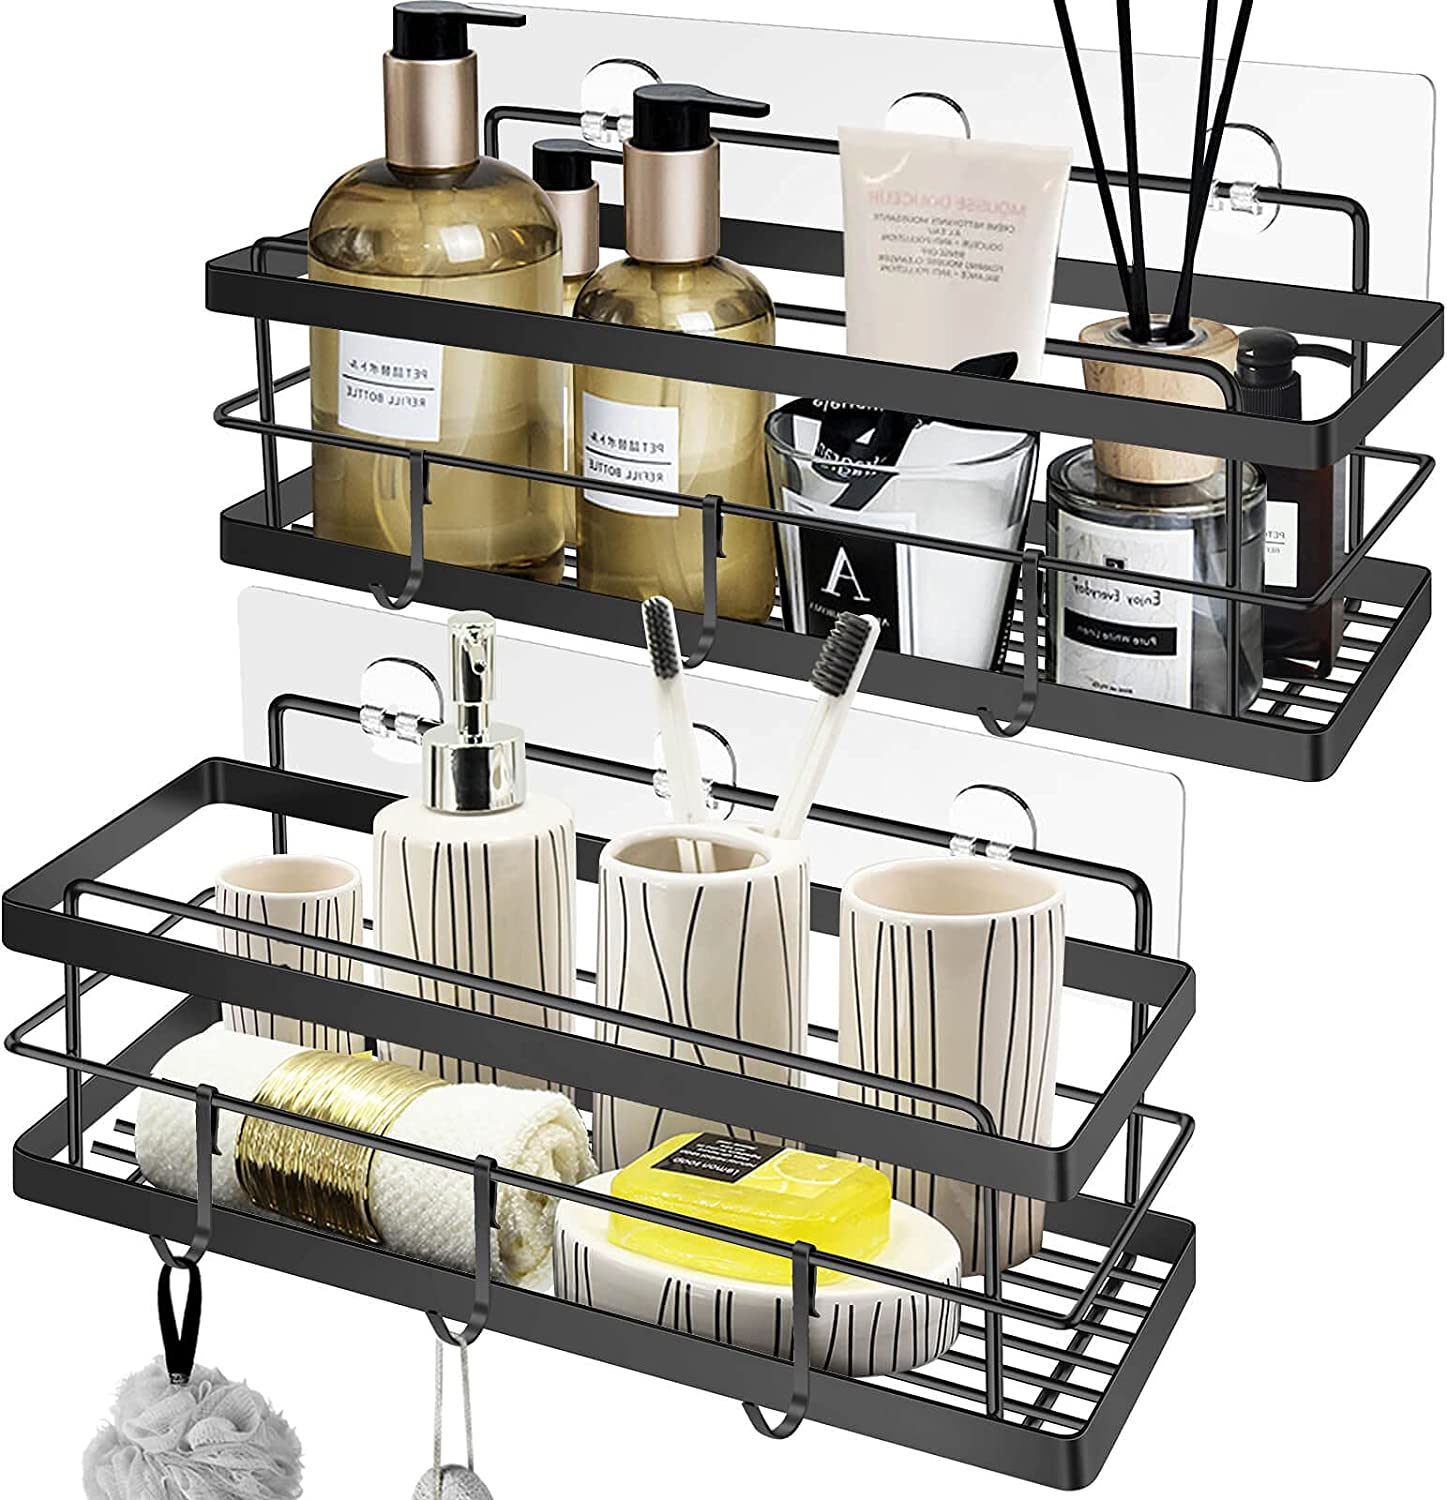 Shower Caddy 2Pack Adhesive Bathroom 6 Hook with Shelf Low price Limited price sale Organizer